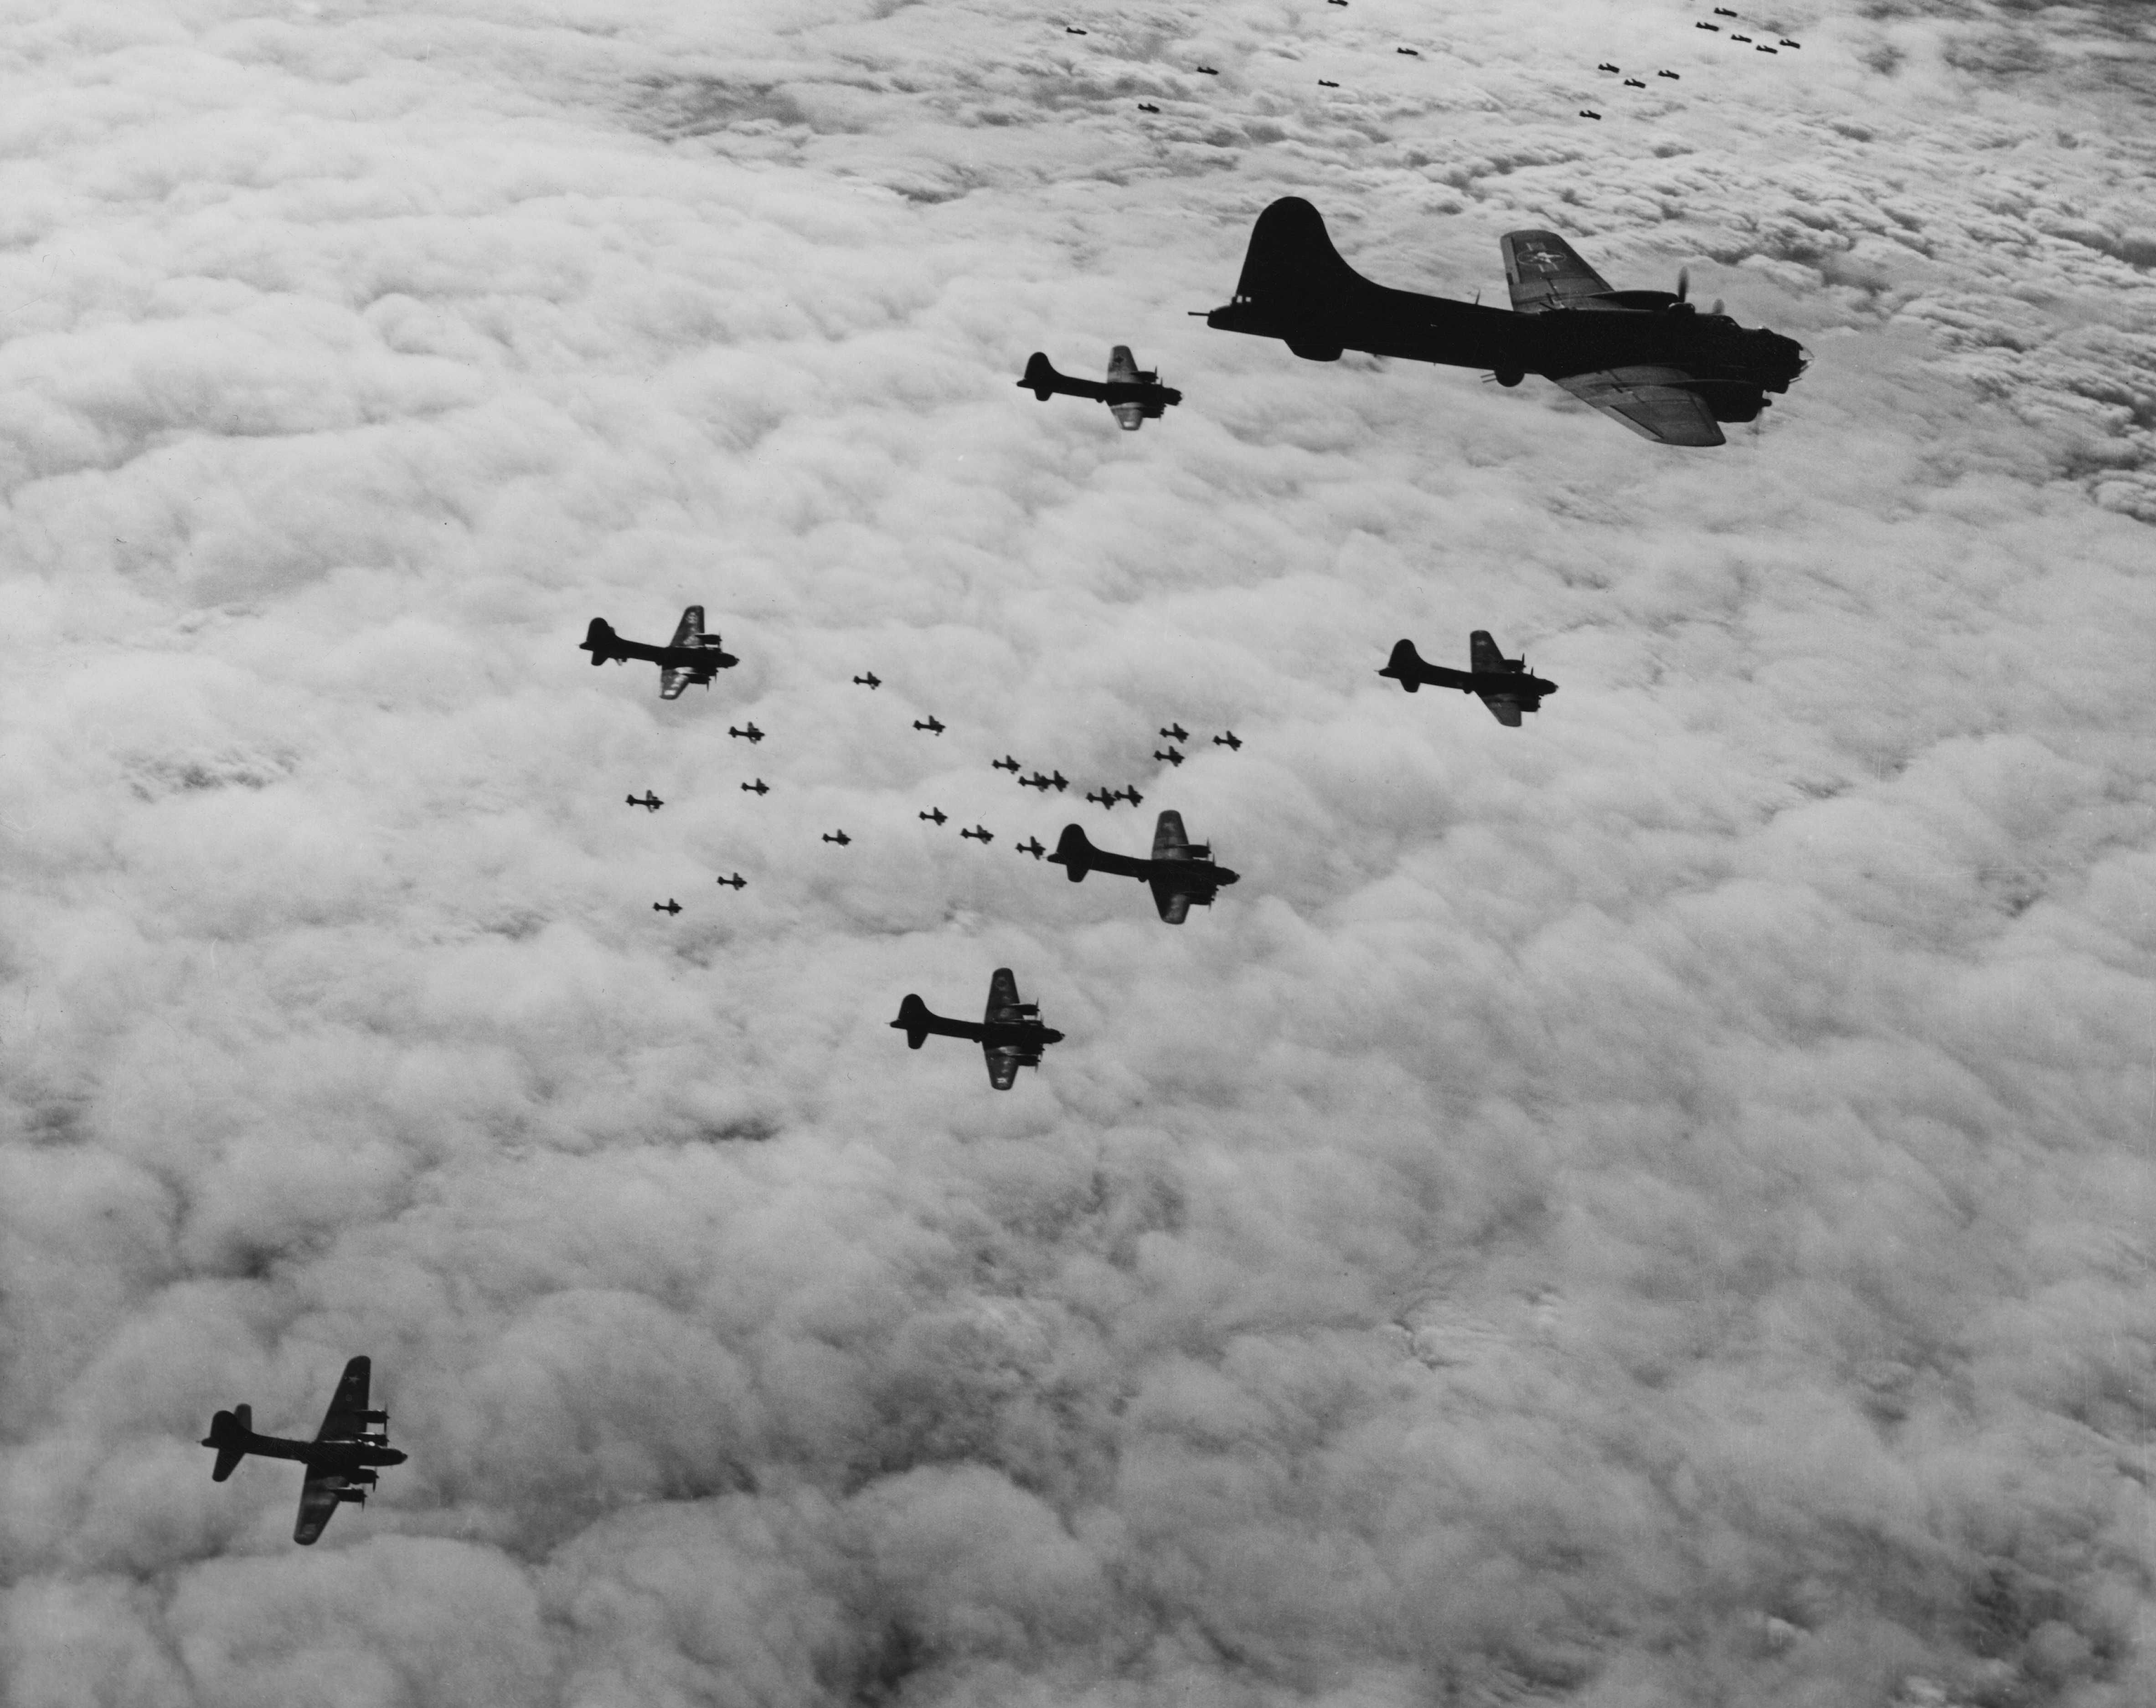 Boeing B-17 bombers flying over Germany in 1943. A plane similar to these crashed in Connecticut this morning.